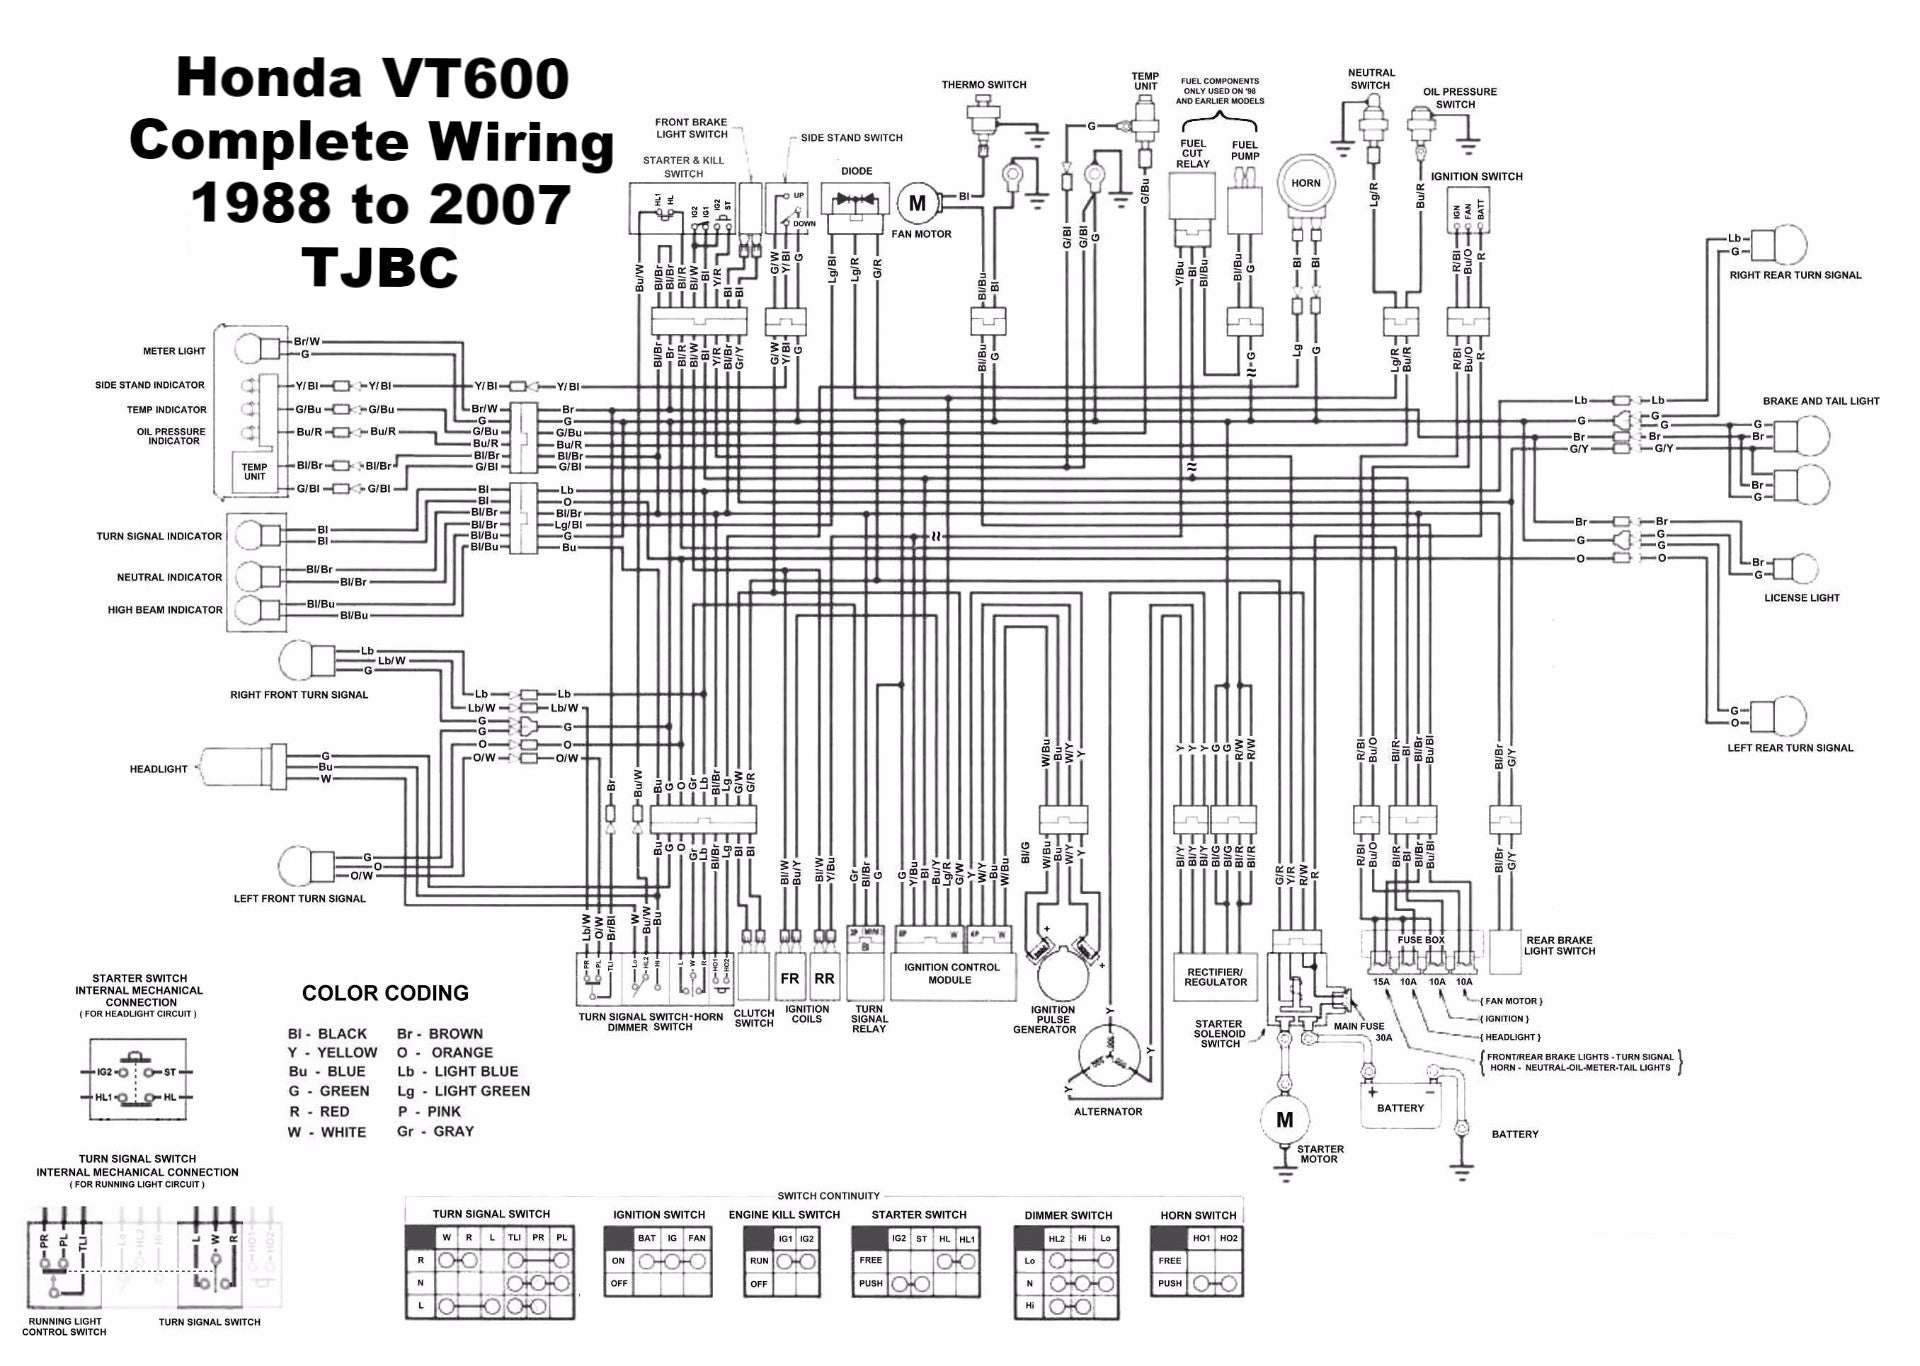 Faq Tj Brutal Customs Motorcycle Kill Switch Wiring Diagram Honda Vt600vlx 1988 2007